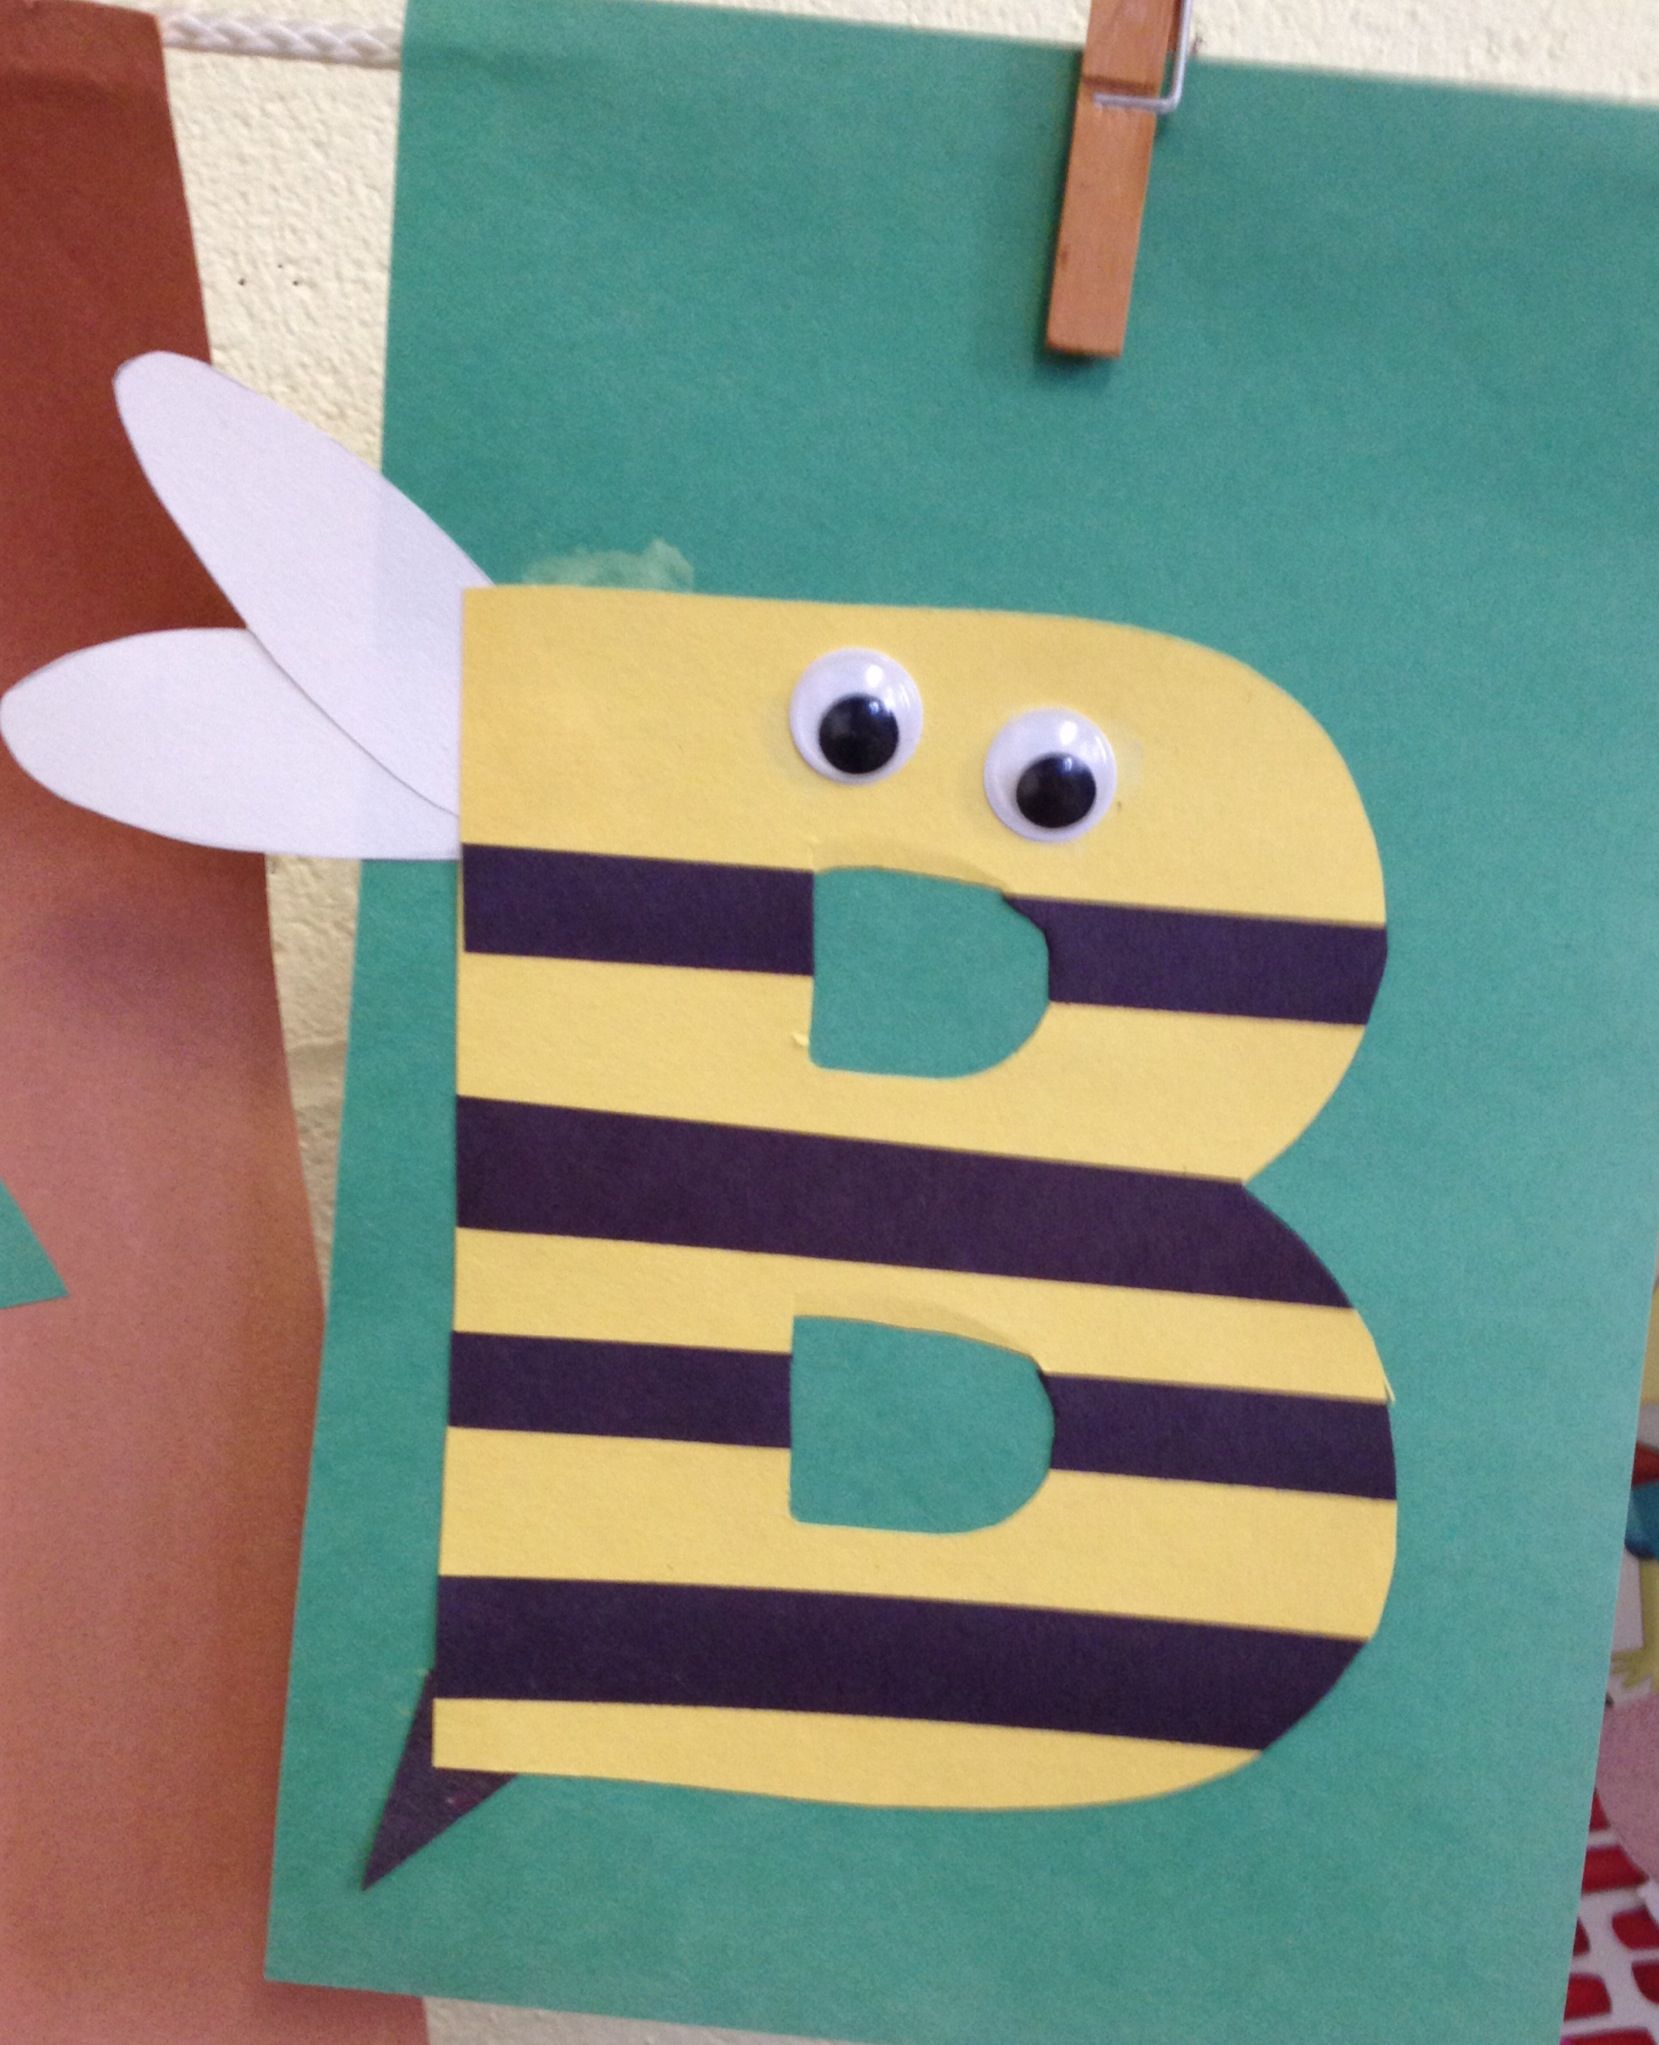 letter b crafts best 25 letter b crafts ideas on letter b 22769 | a57d2551fbdbfc8a88c3f8aef166304a